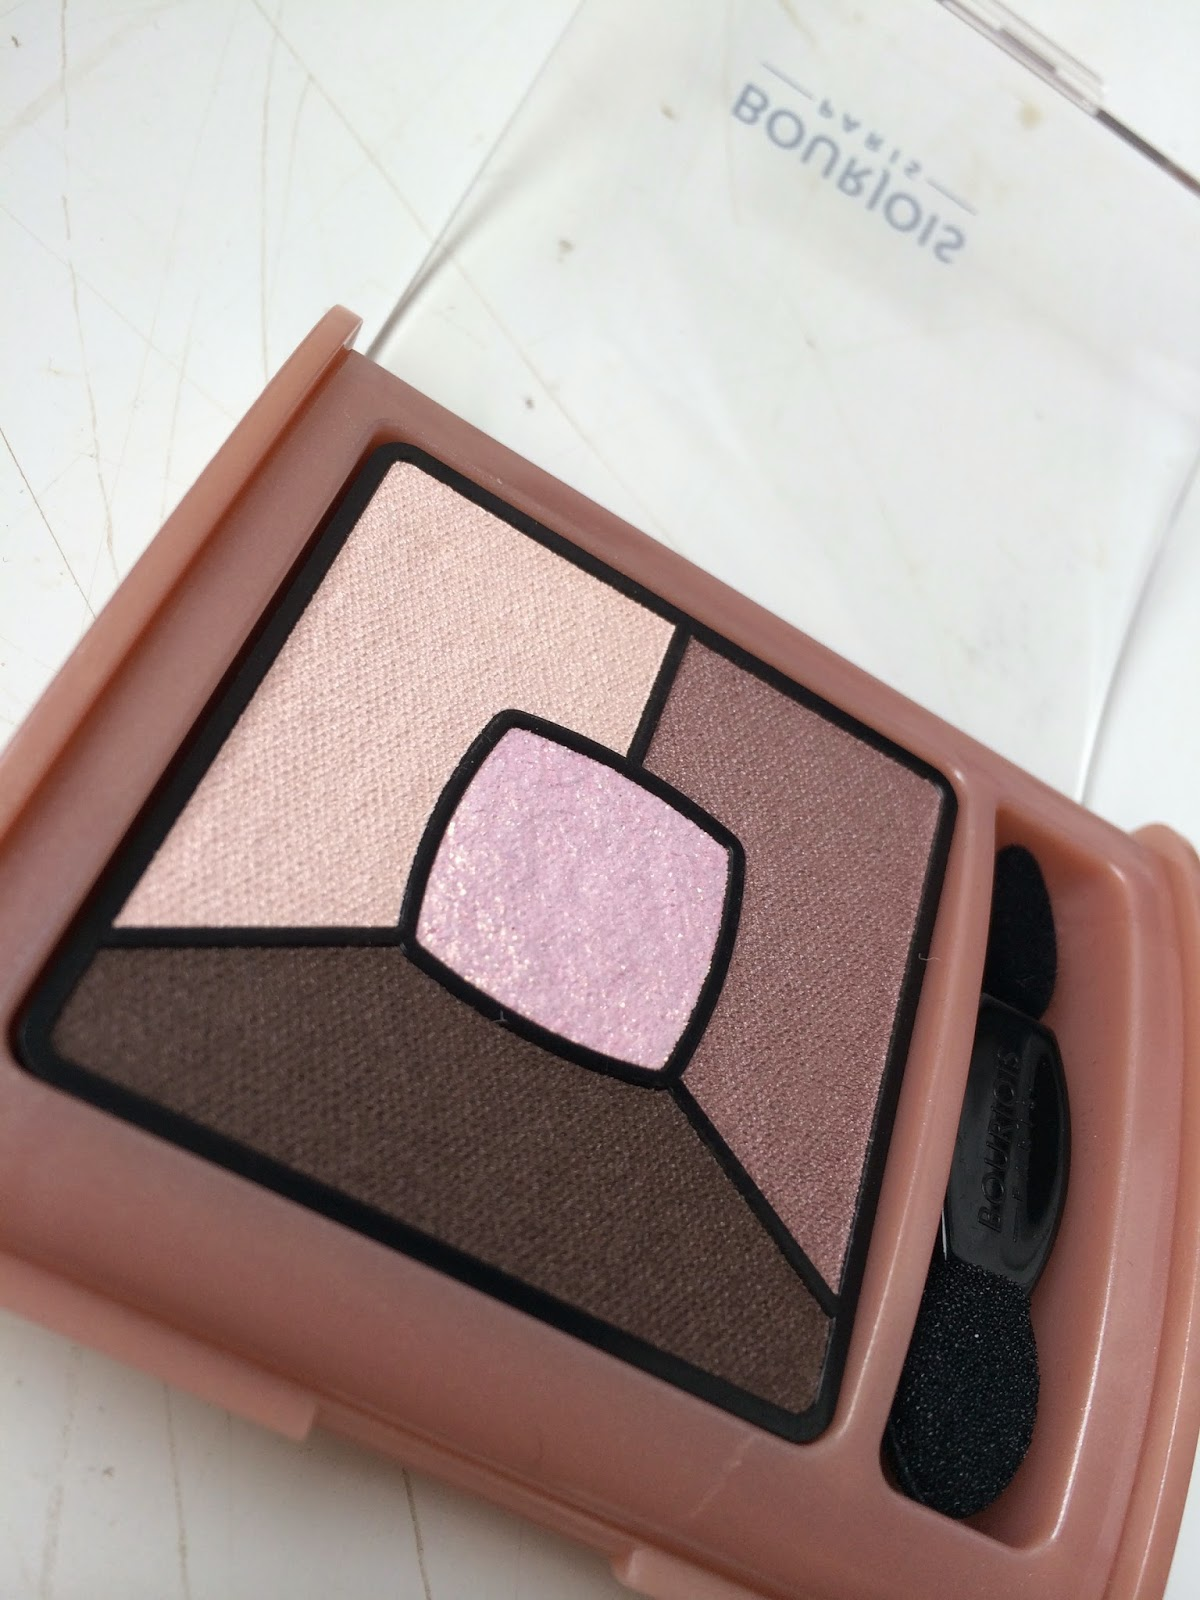 Bourjois-Quad-Smoky-Stories-eyeshadow-over-rose-review